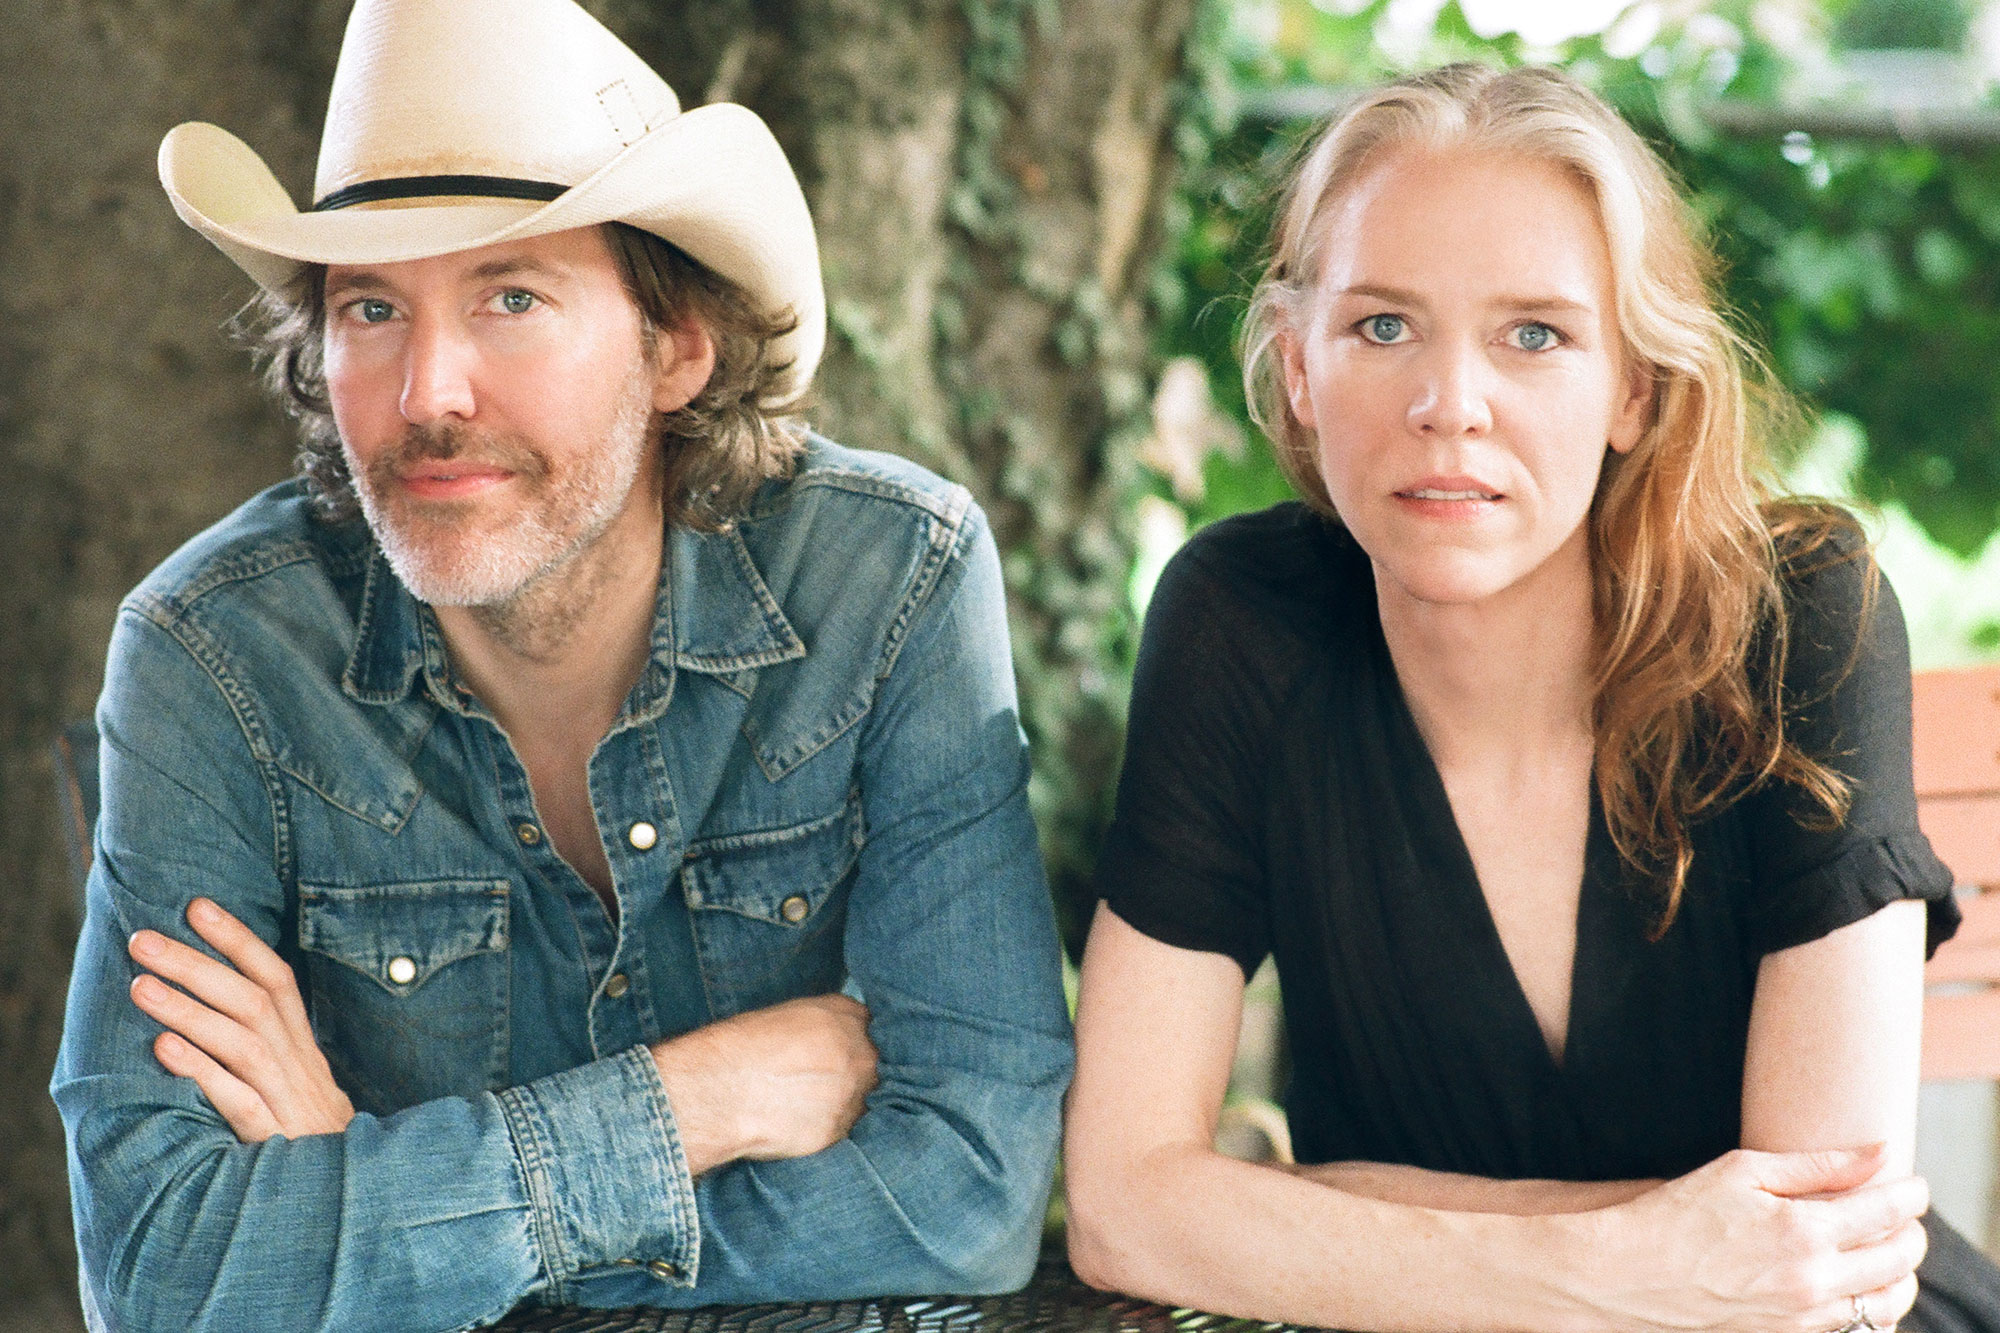 Image result for gillian welch and david rawlings images